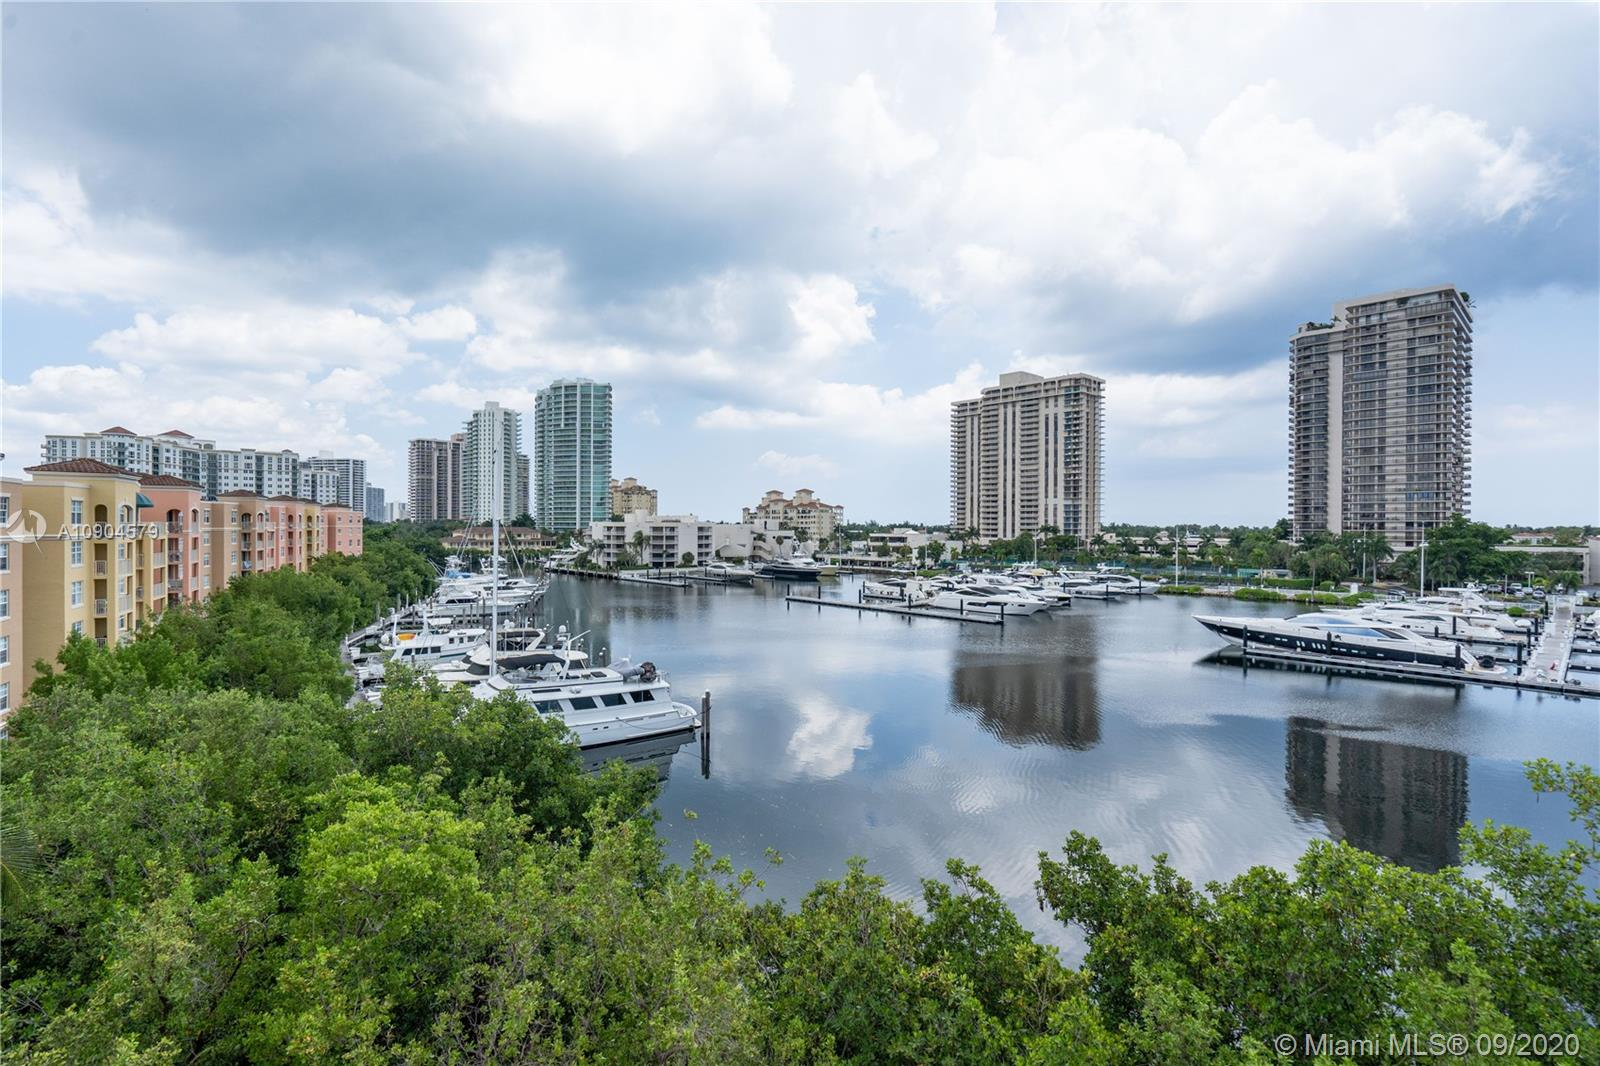 Yacht Club 3 at Aventura #7606 - 19601 E Country Club Dr #7606, Aventura, FL 33180